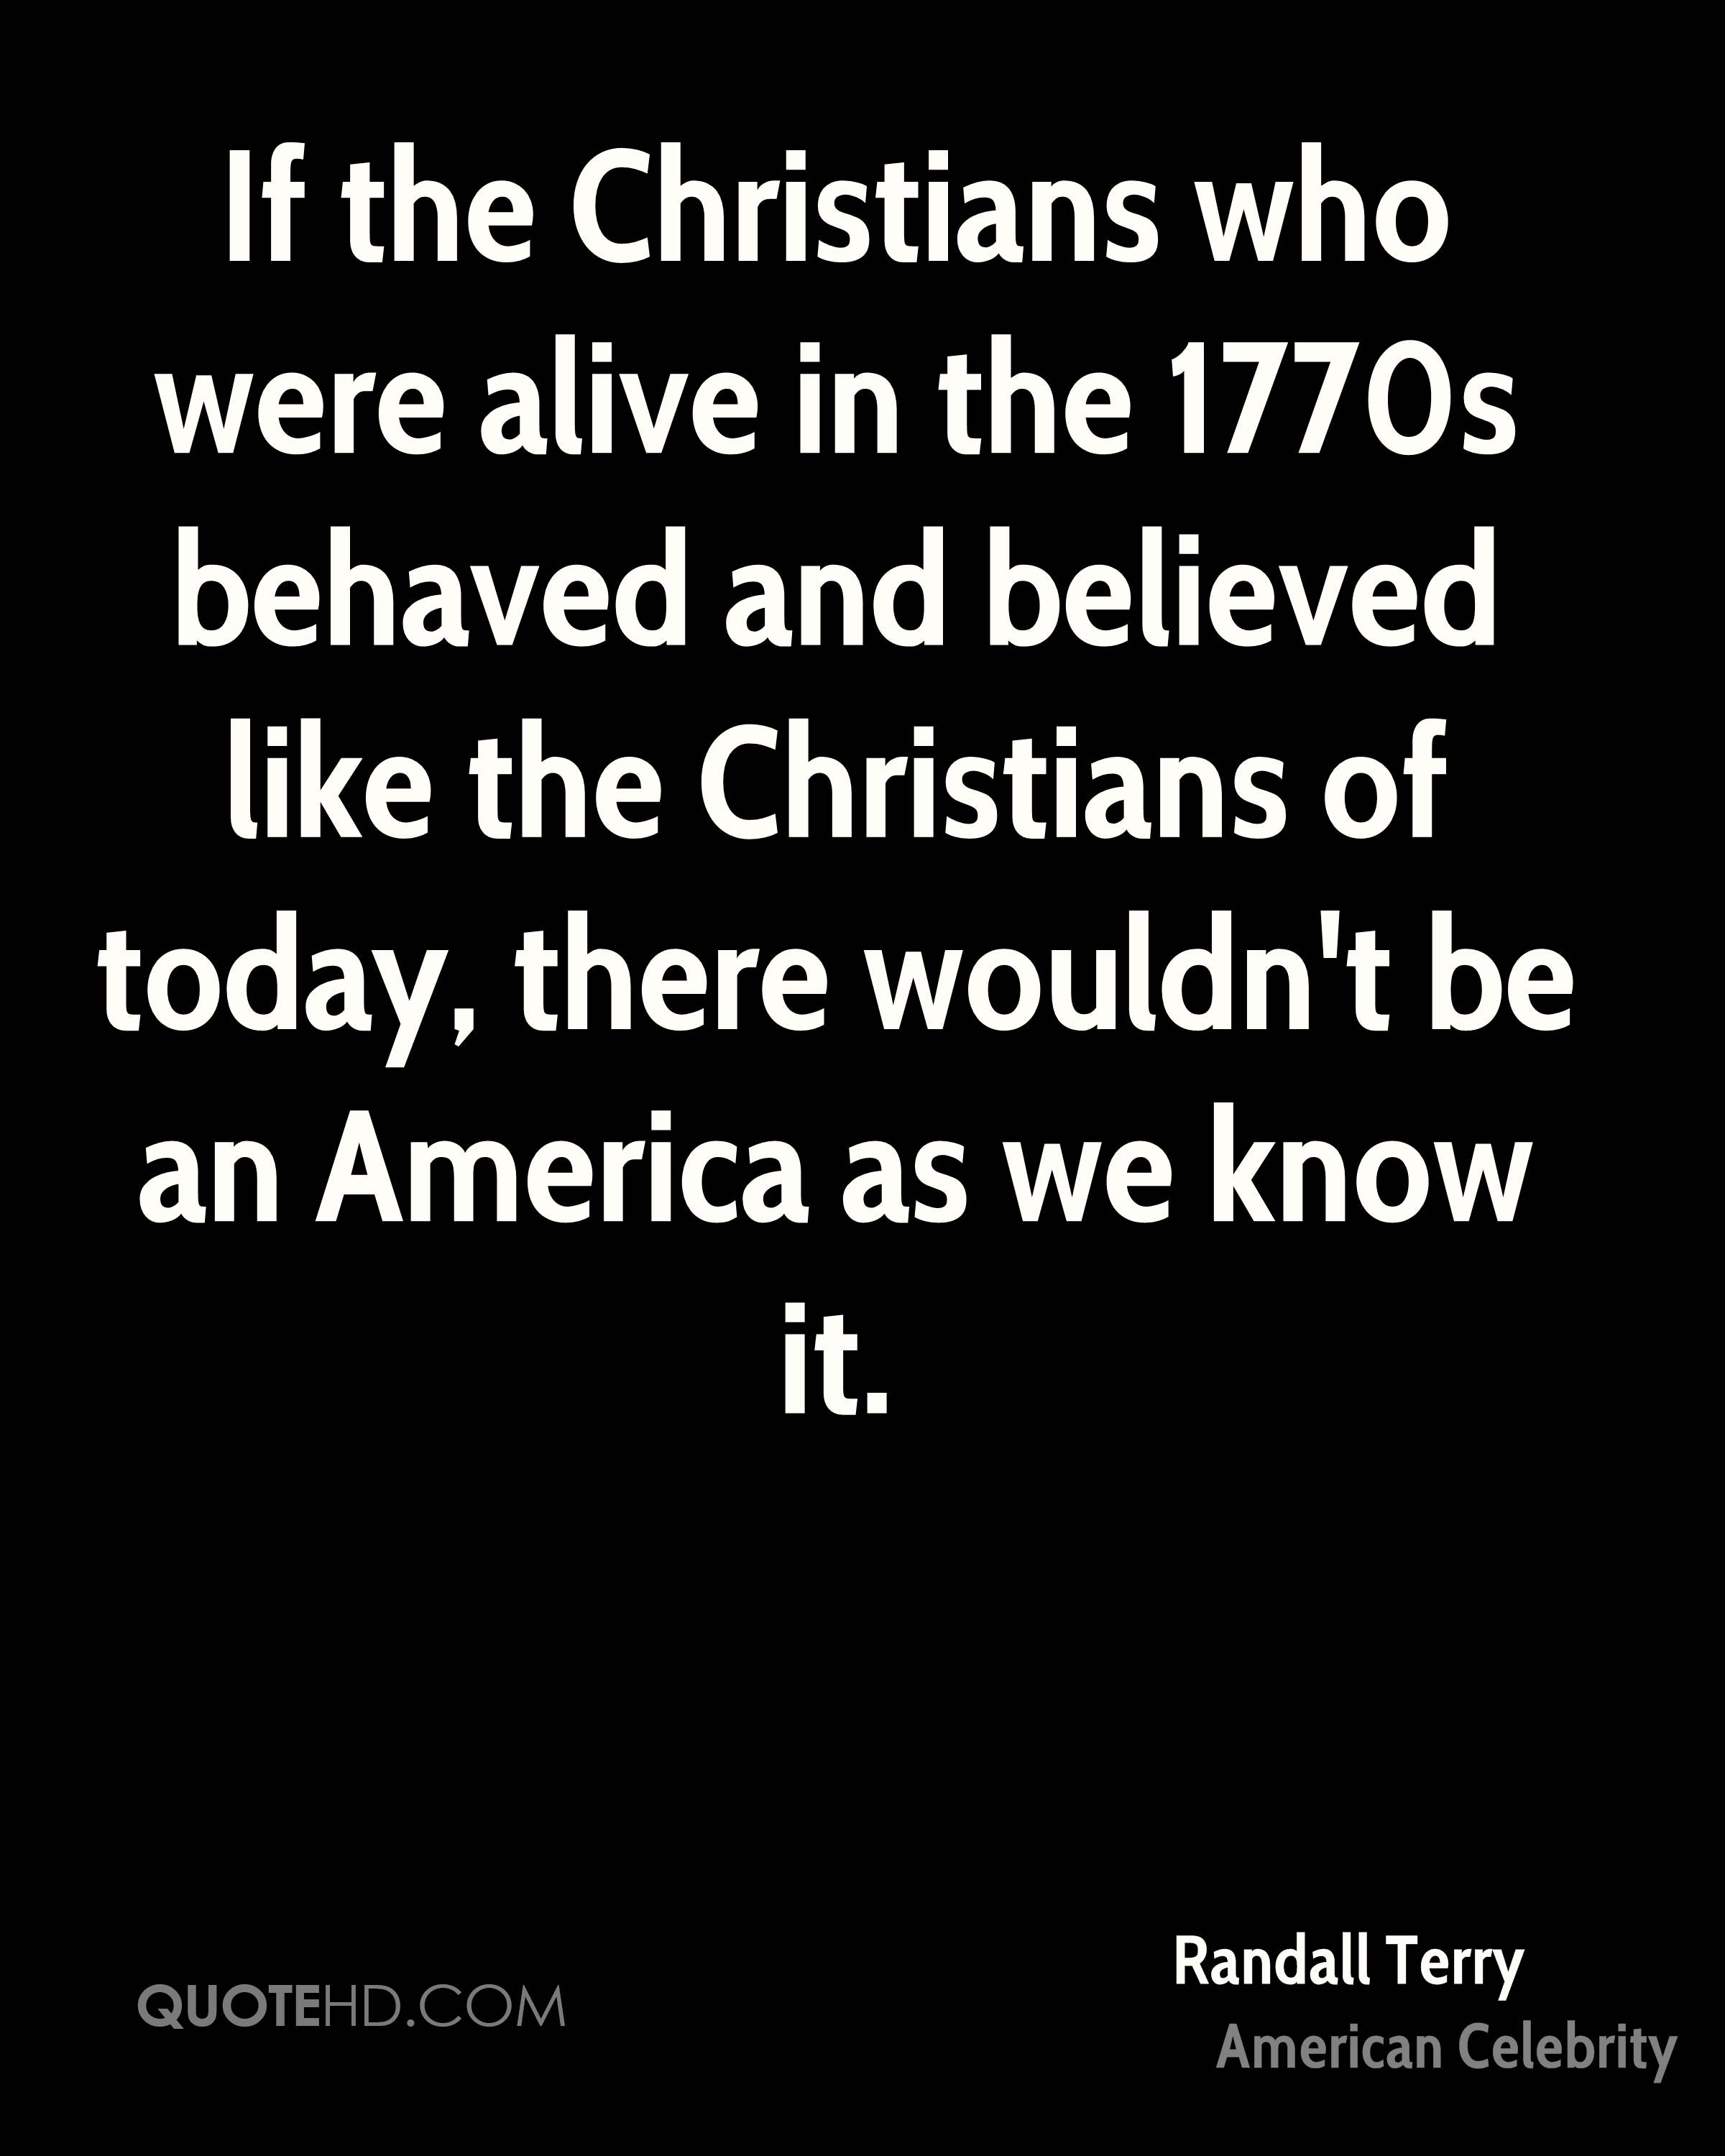 If the Christians who were alive in the 1770s behaved and believed like the Christians of today, there wouldn't be an America as we know it.